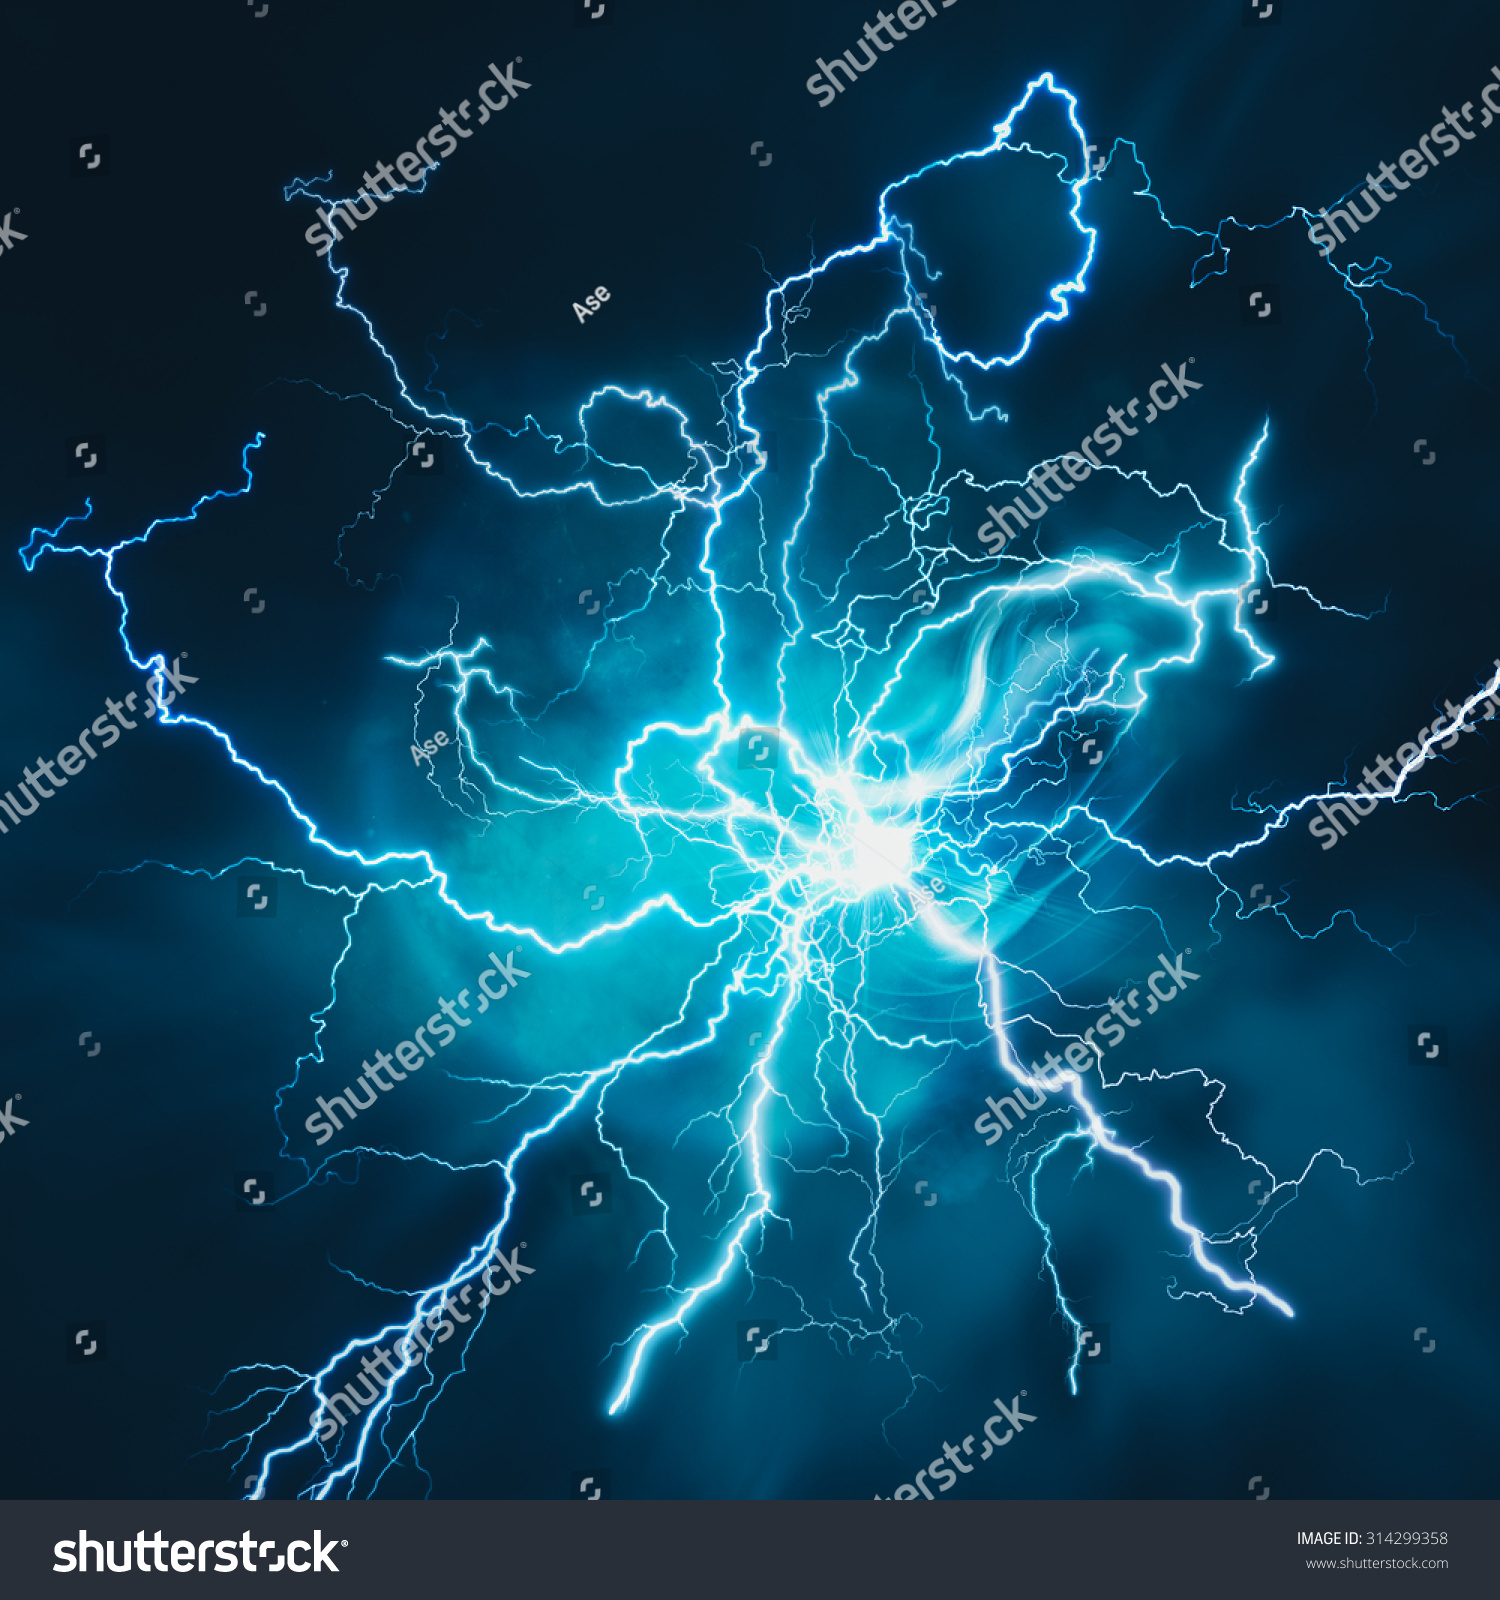 Electric Storm Abstract Science Power Industry Stock Photo